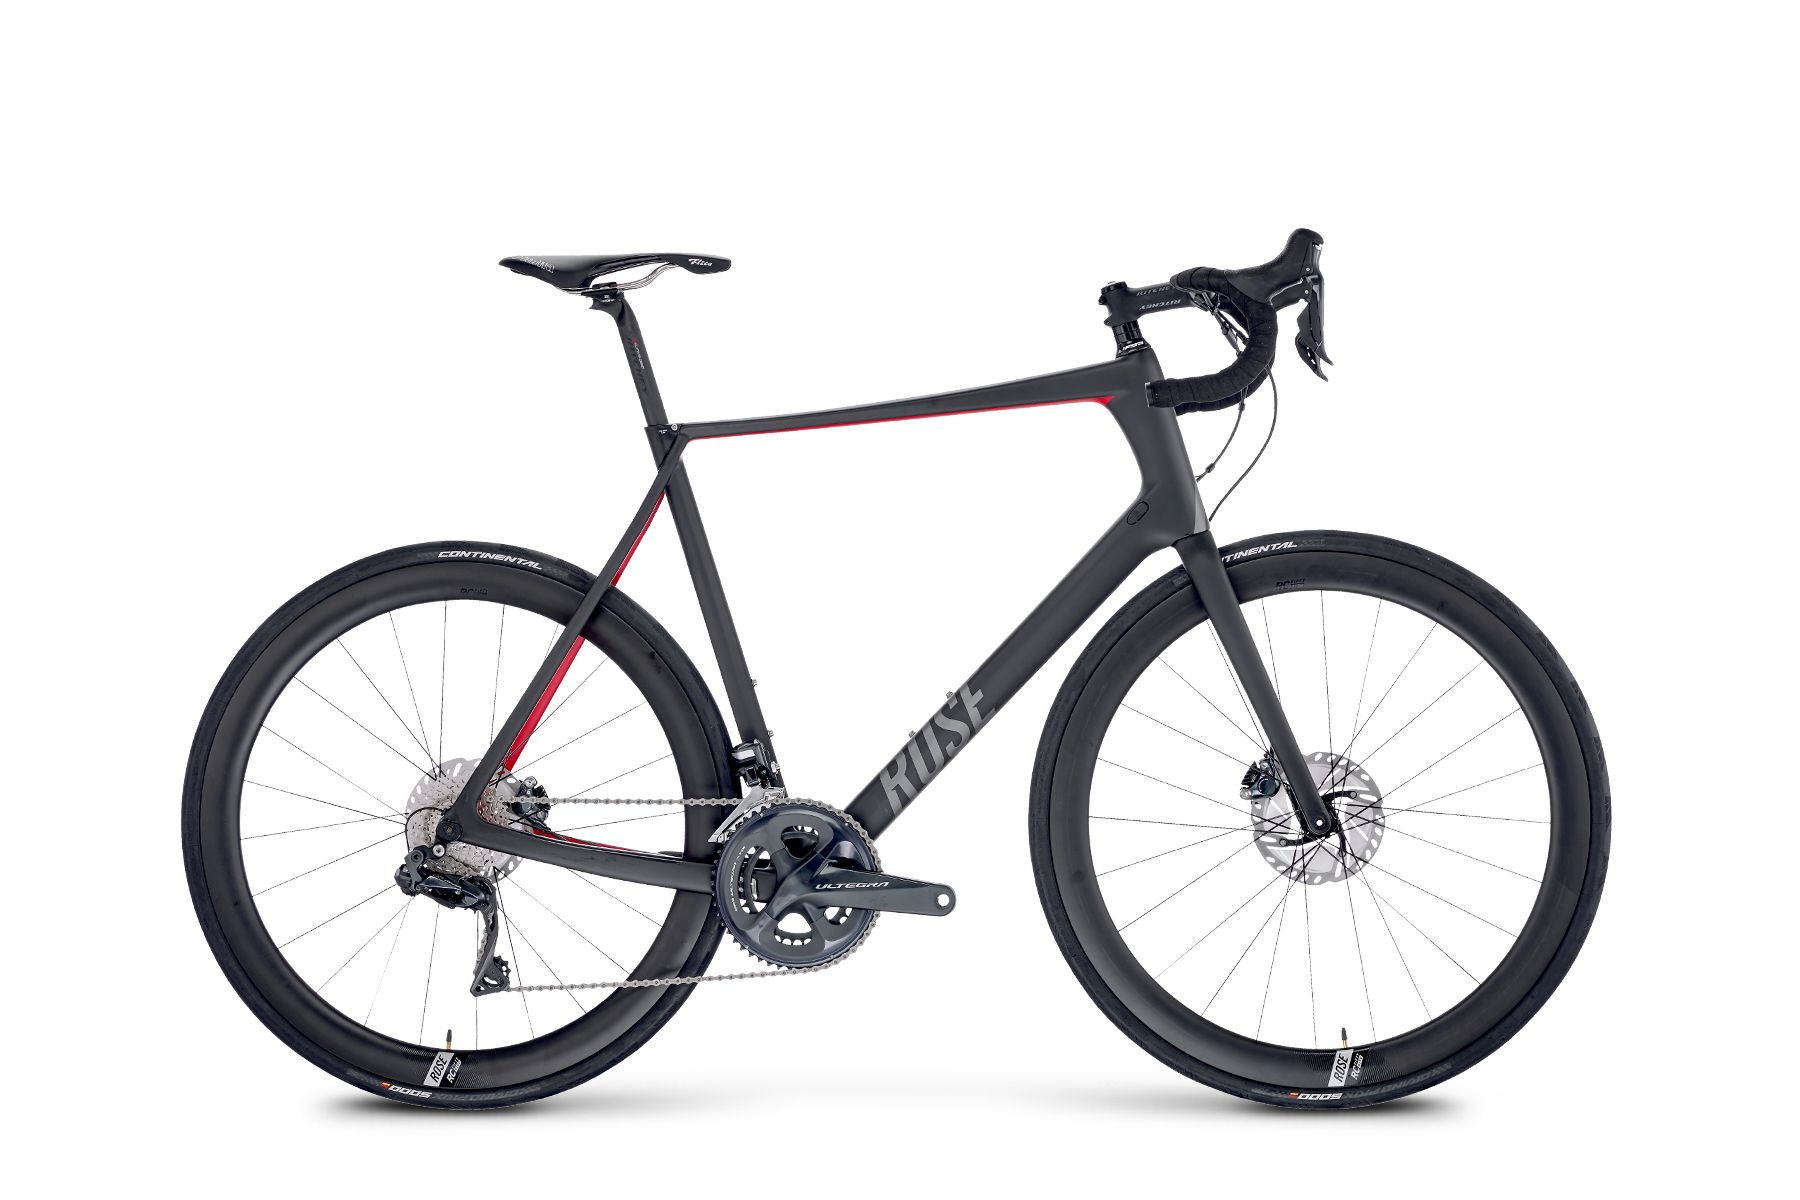 TEAM GF SIX DISC Ultegra Di2 Showroom Bike size 61cm